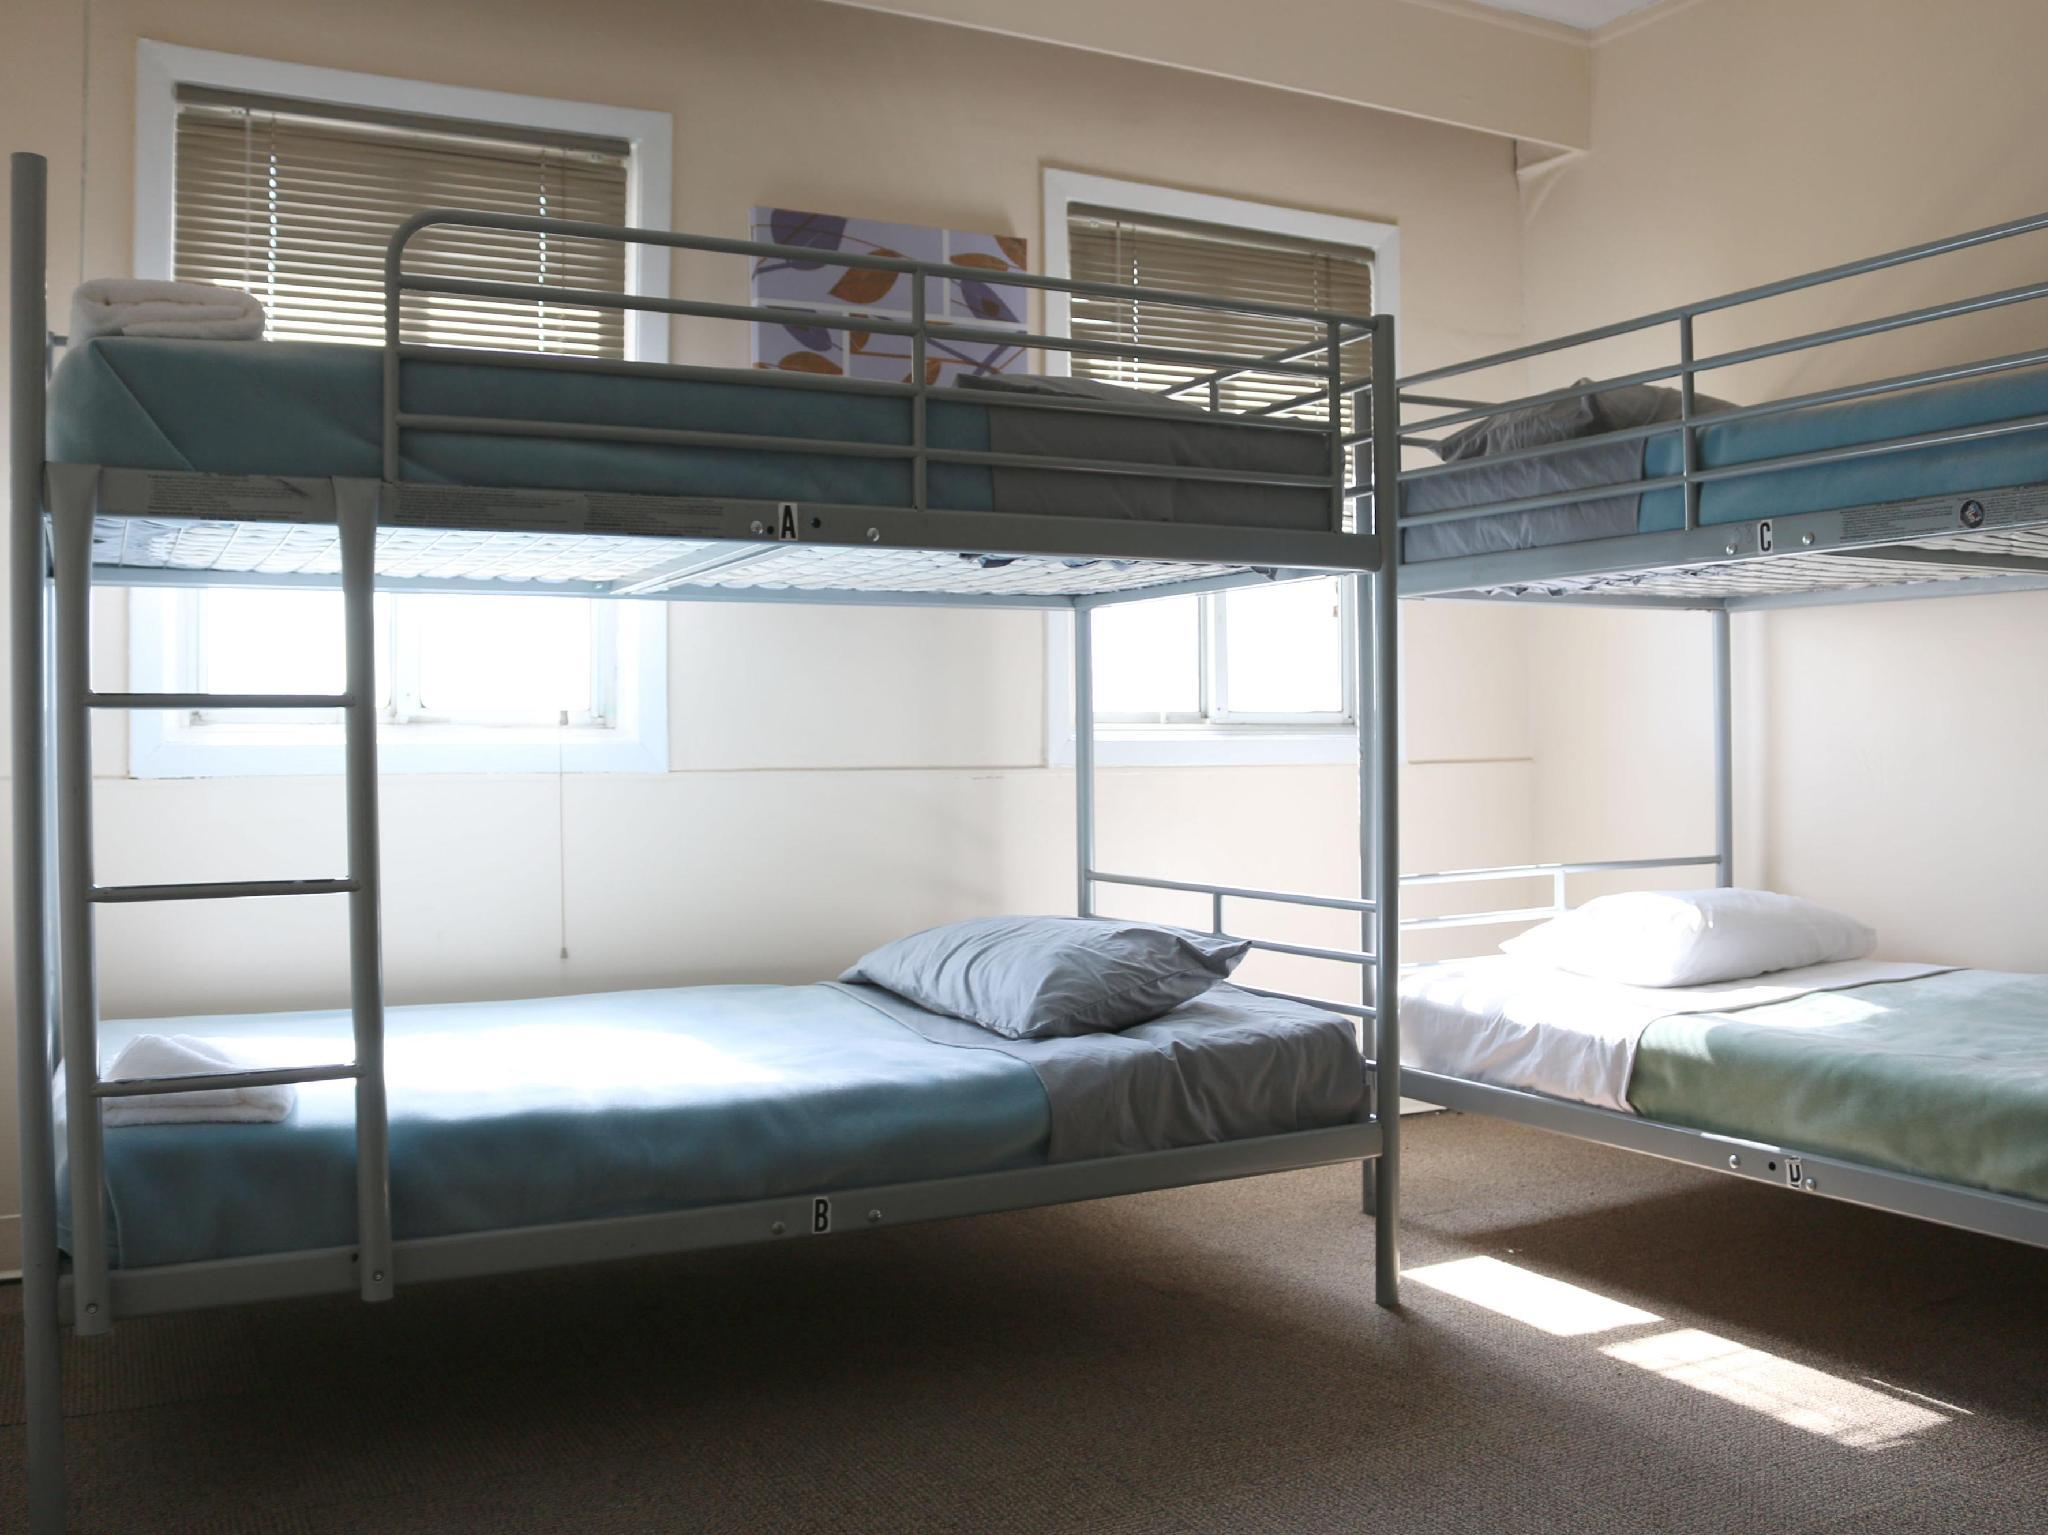 6-Bed Dormitory - Male Only